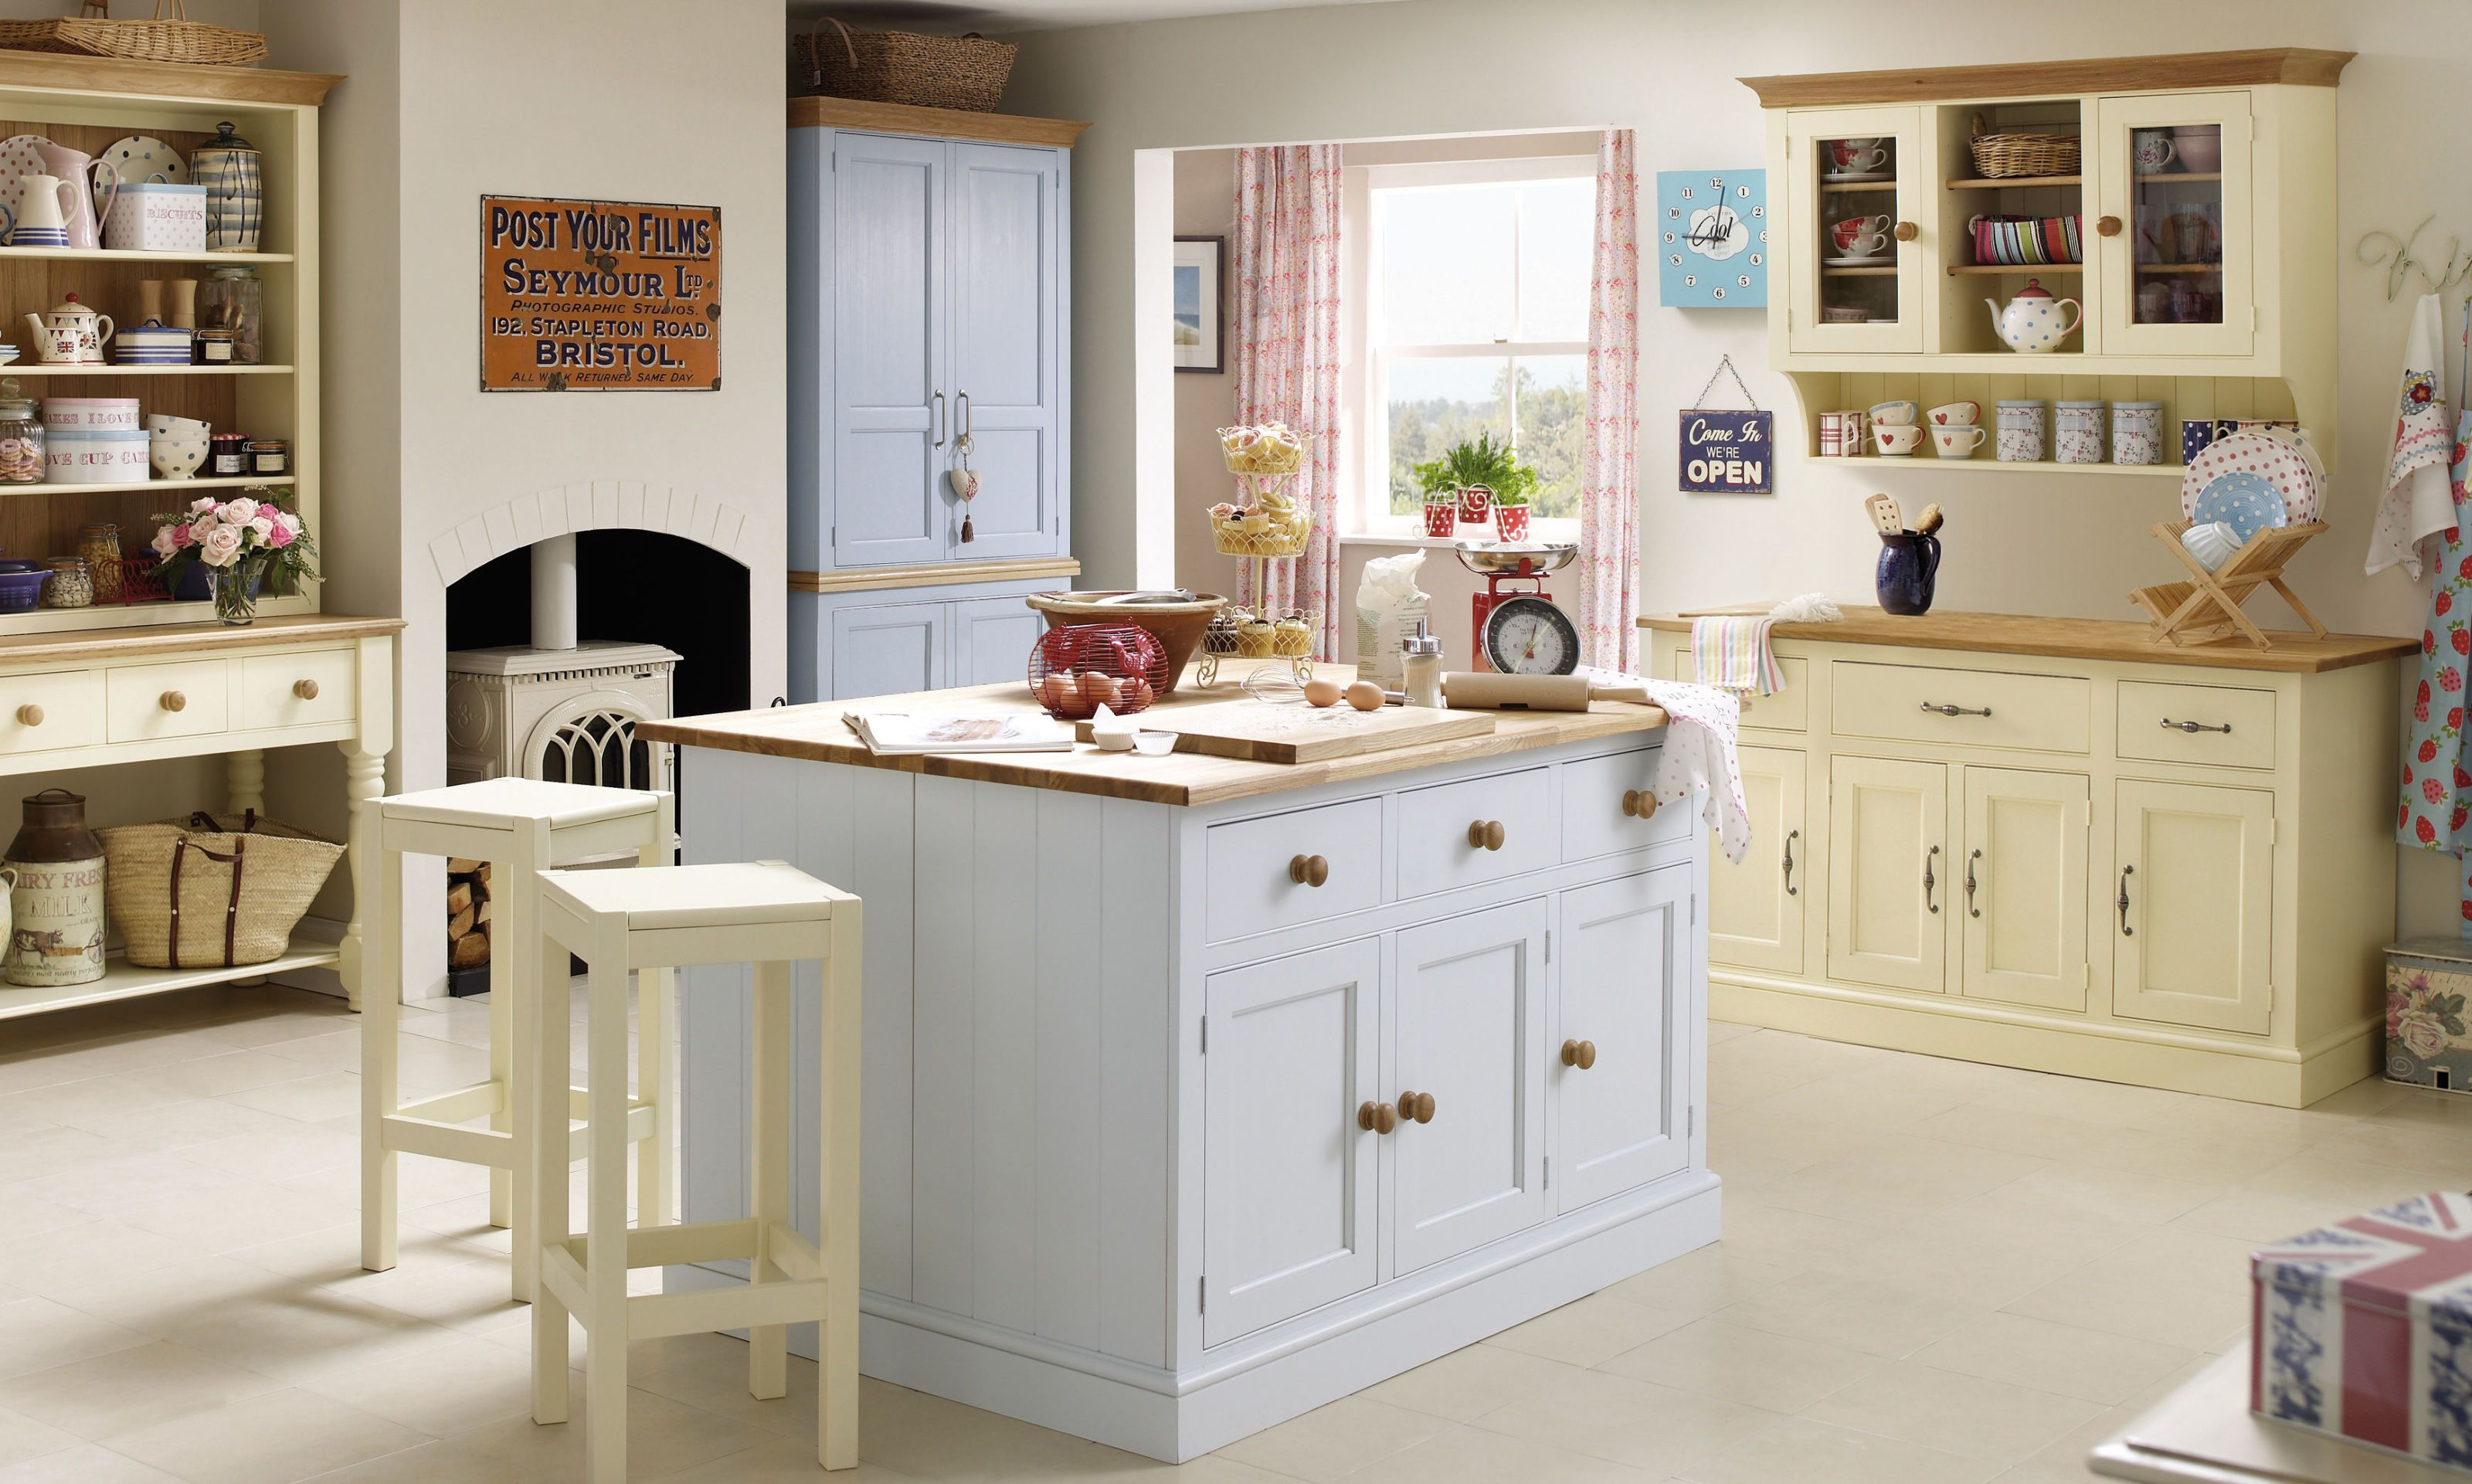 Millbrook Painted Furniture Collection - Country Kitchen UEWVCZC